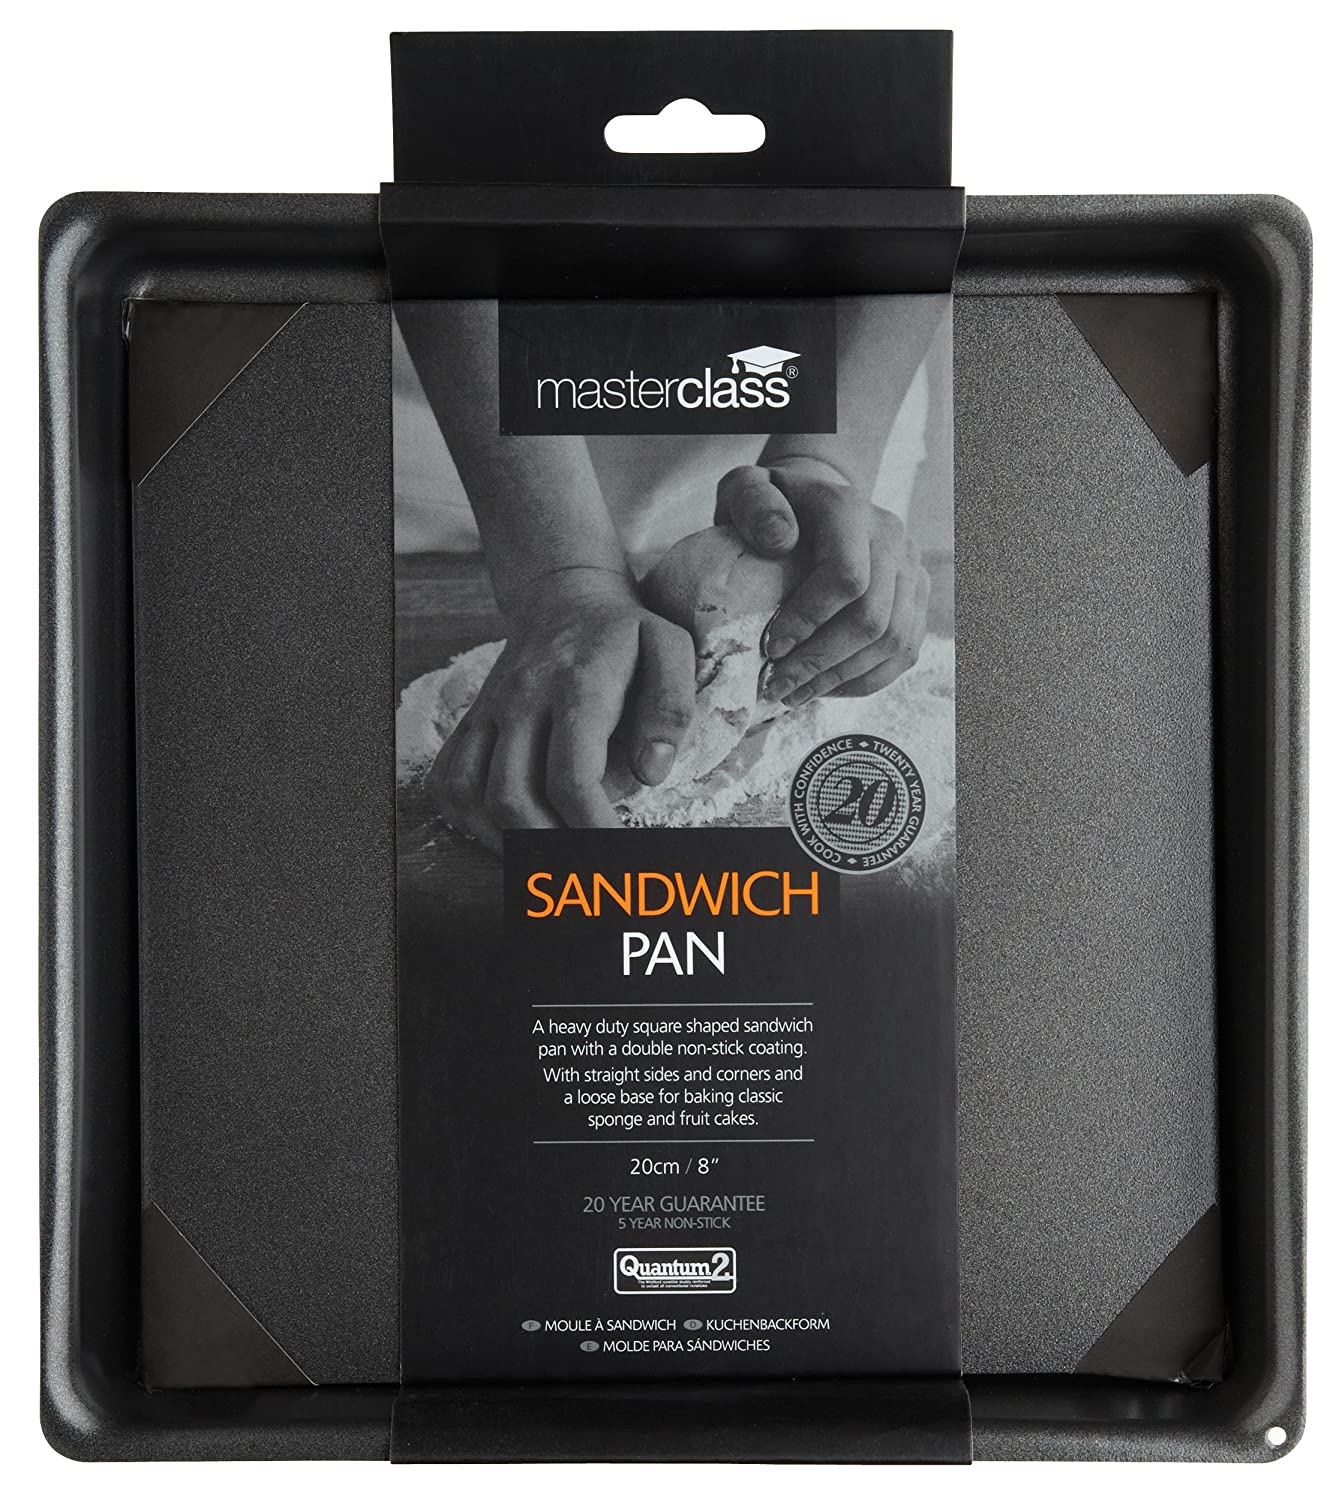 Amazon.com: Kitchencraft Masterclass Non-stick Square Sandwich Tin With Loose Base, 20cm: Kitchen & Dining